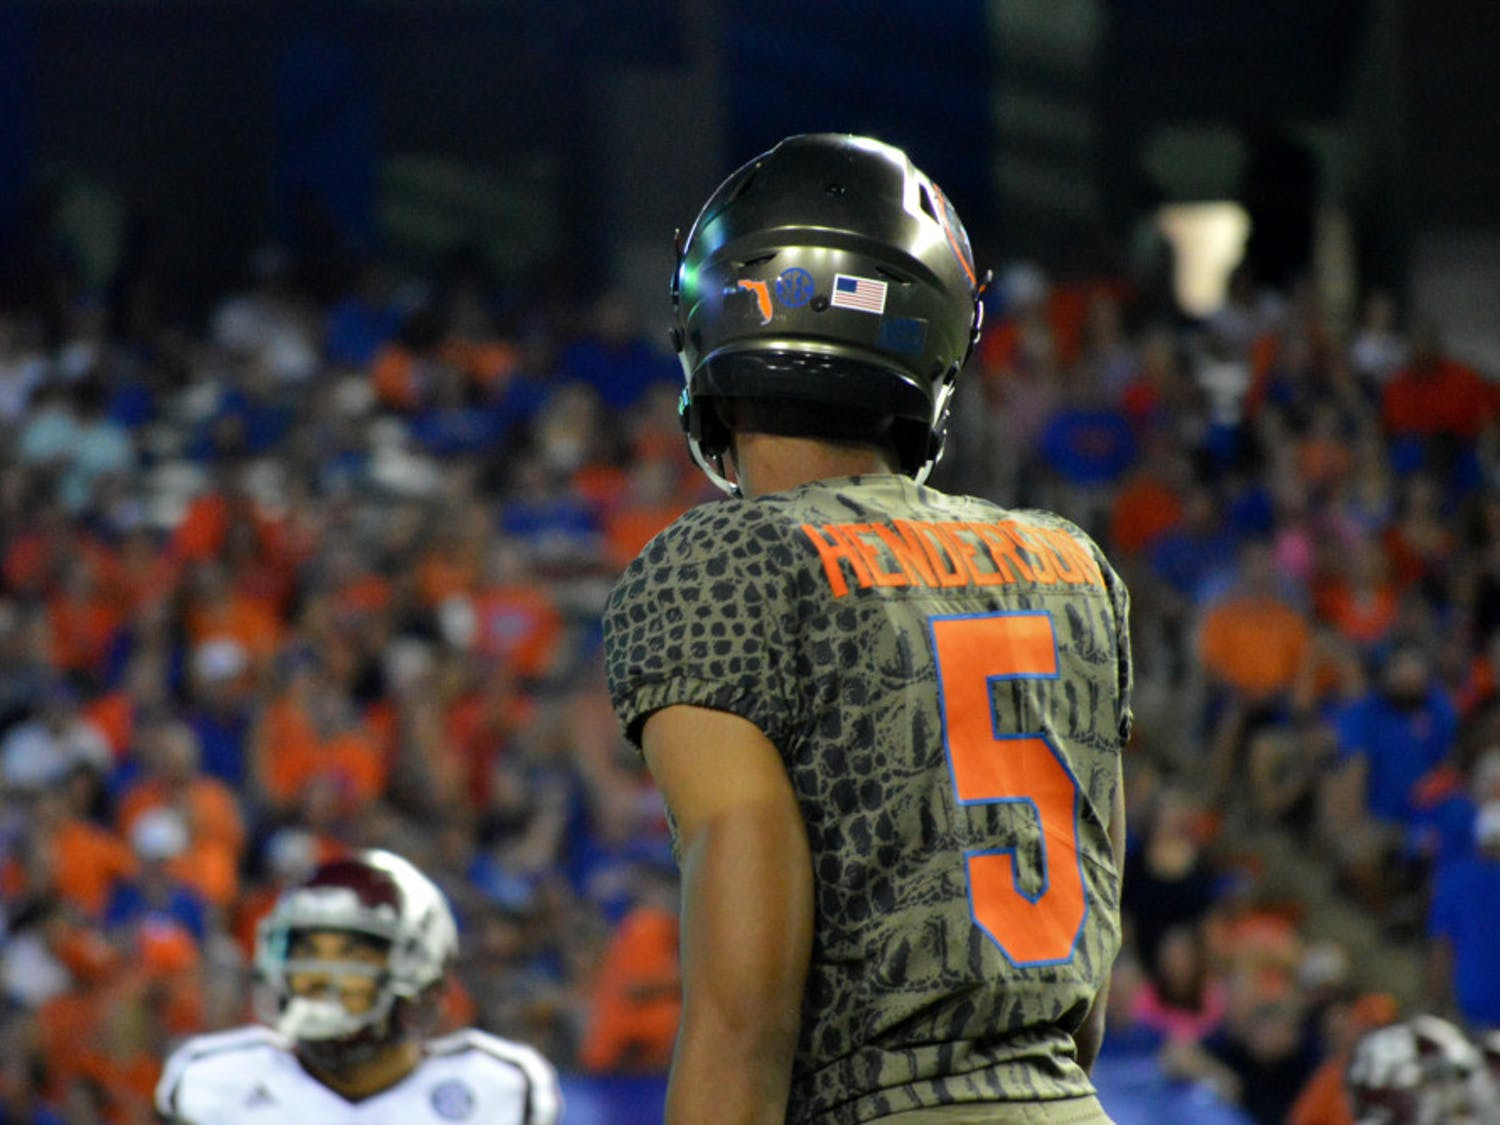 While Florida's defensive backs played well early, marked by Henderson's first quarter interception on a Missouri fade route in the end zone, they also allowed the most passing touchdowns by an opponent since Sept. 30 against Vanderbilt.